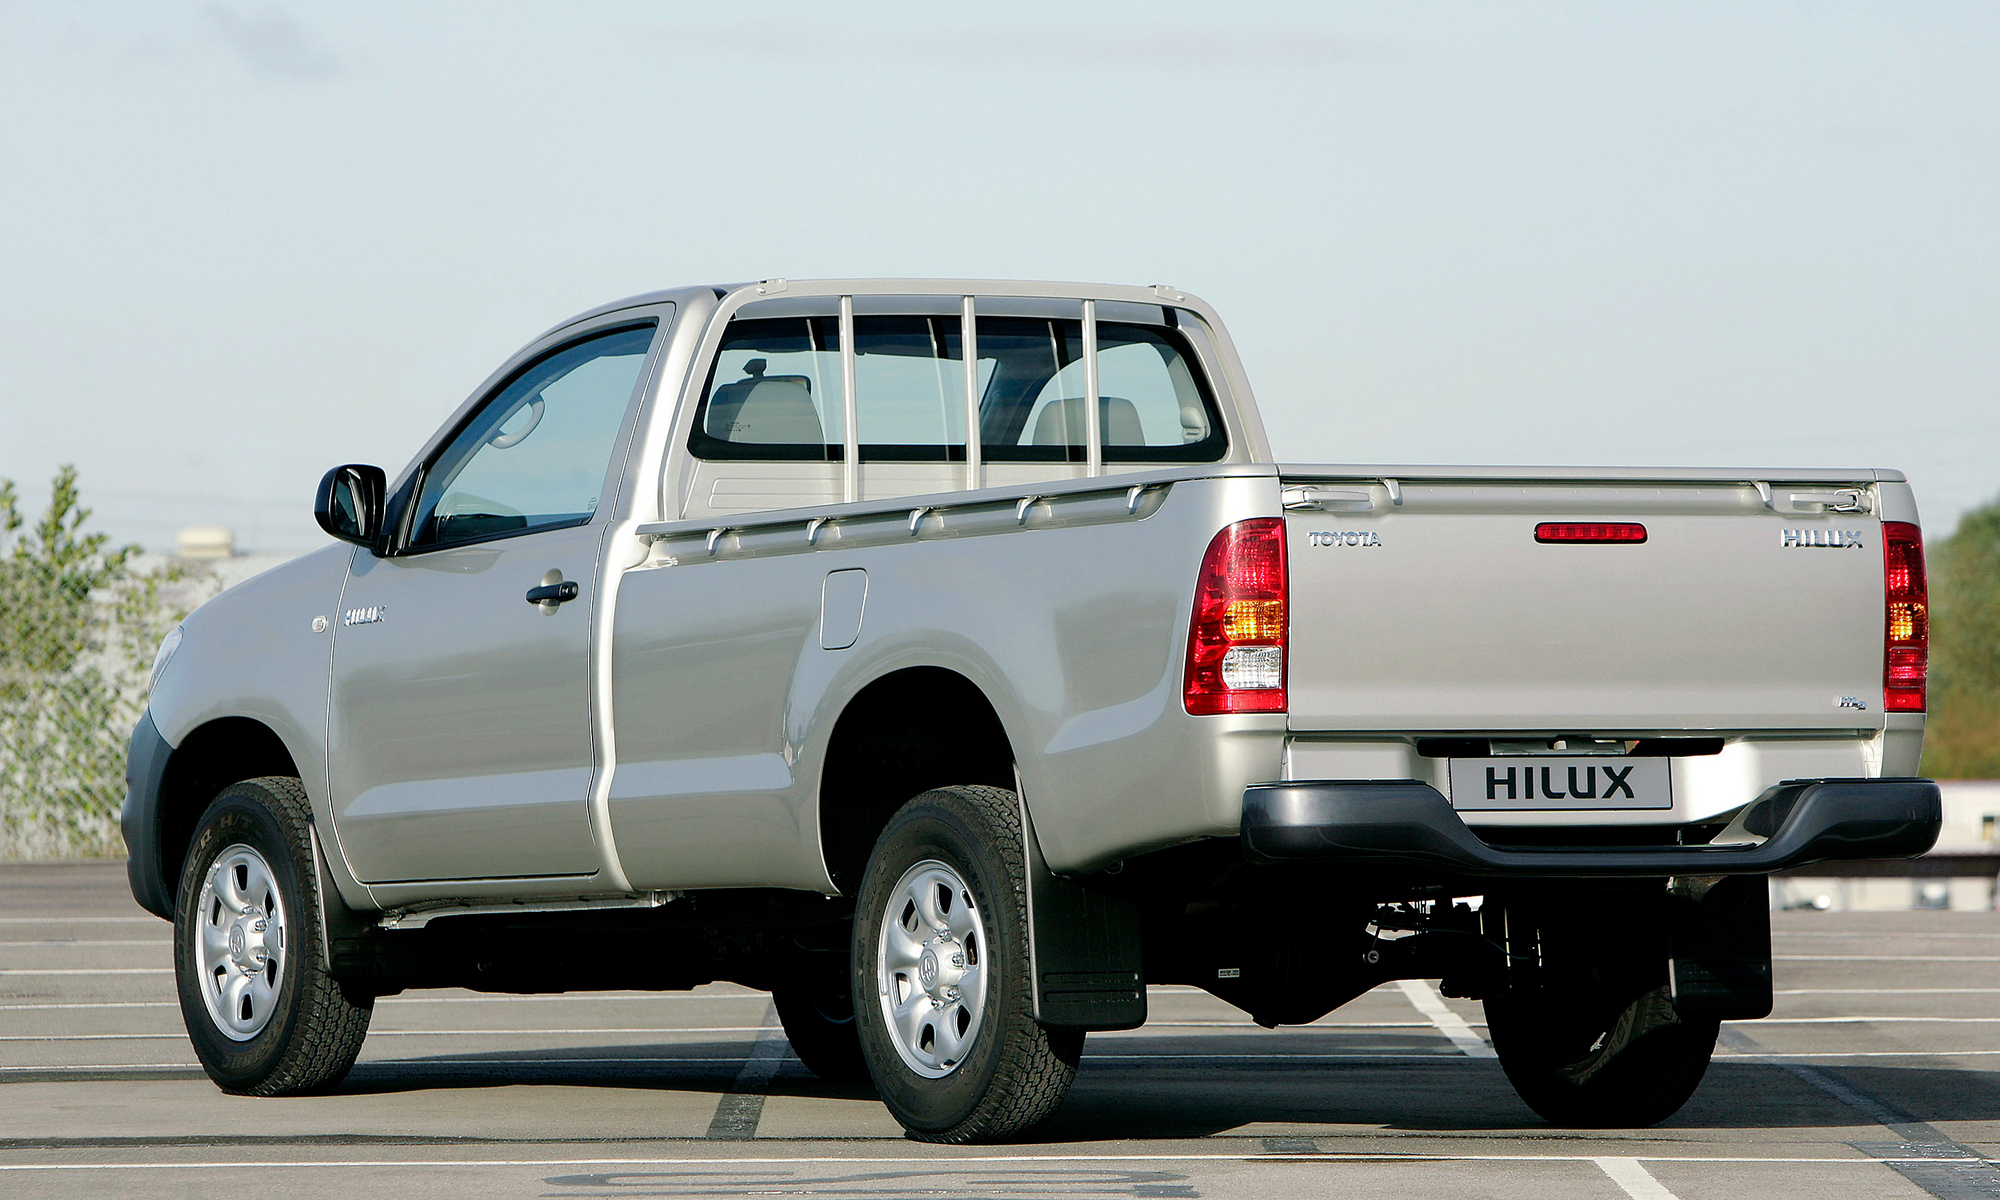 toyota hilux 2.5 single cab hl2 4x4 slideshow :: autoviva